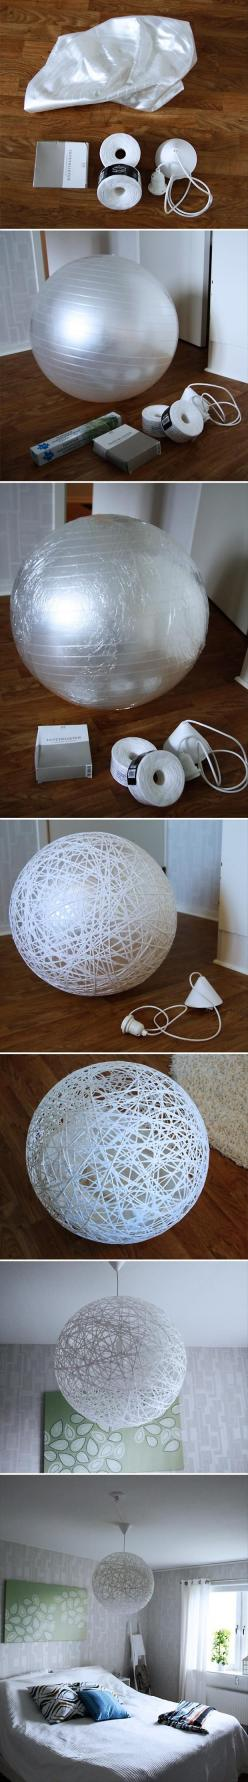 Dump A Day Fun Do It Yourself Craft Ideas - 45 Pics: Idea, Diy Crafts, Exercise Ball, Light Fixture, Lampshade, Diy Light, Diy String